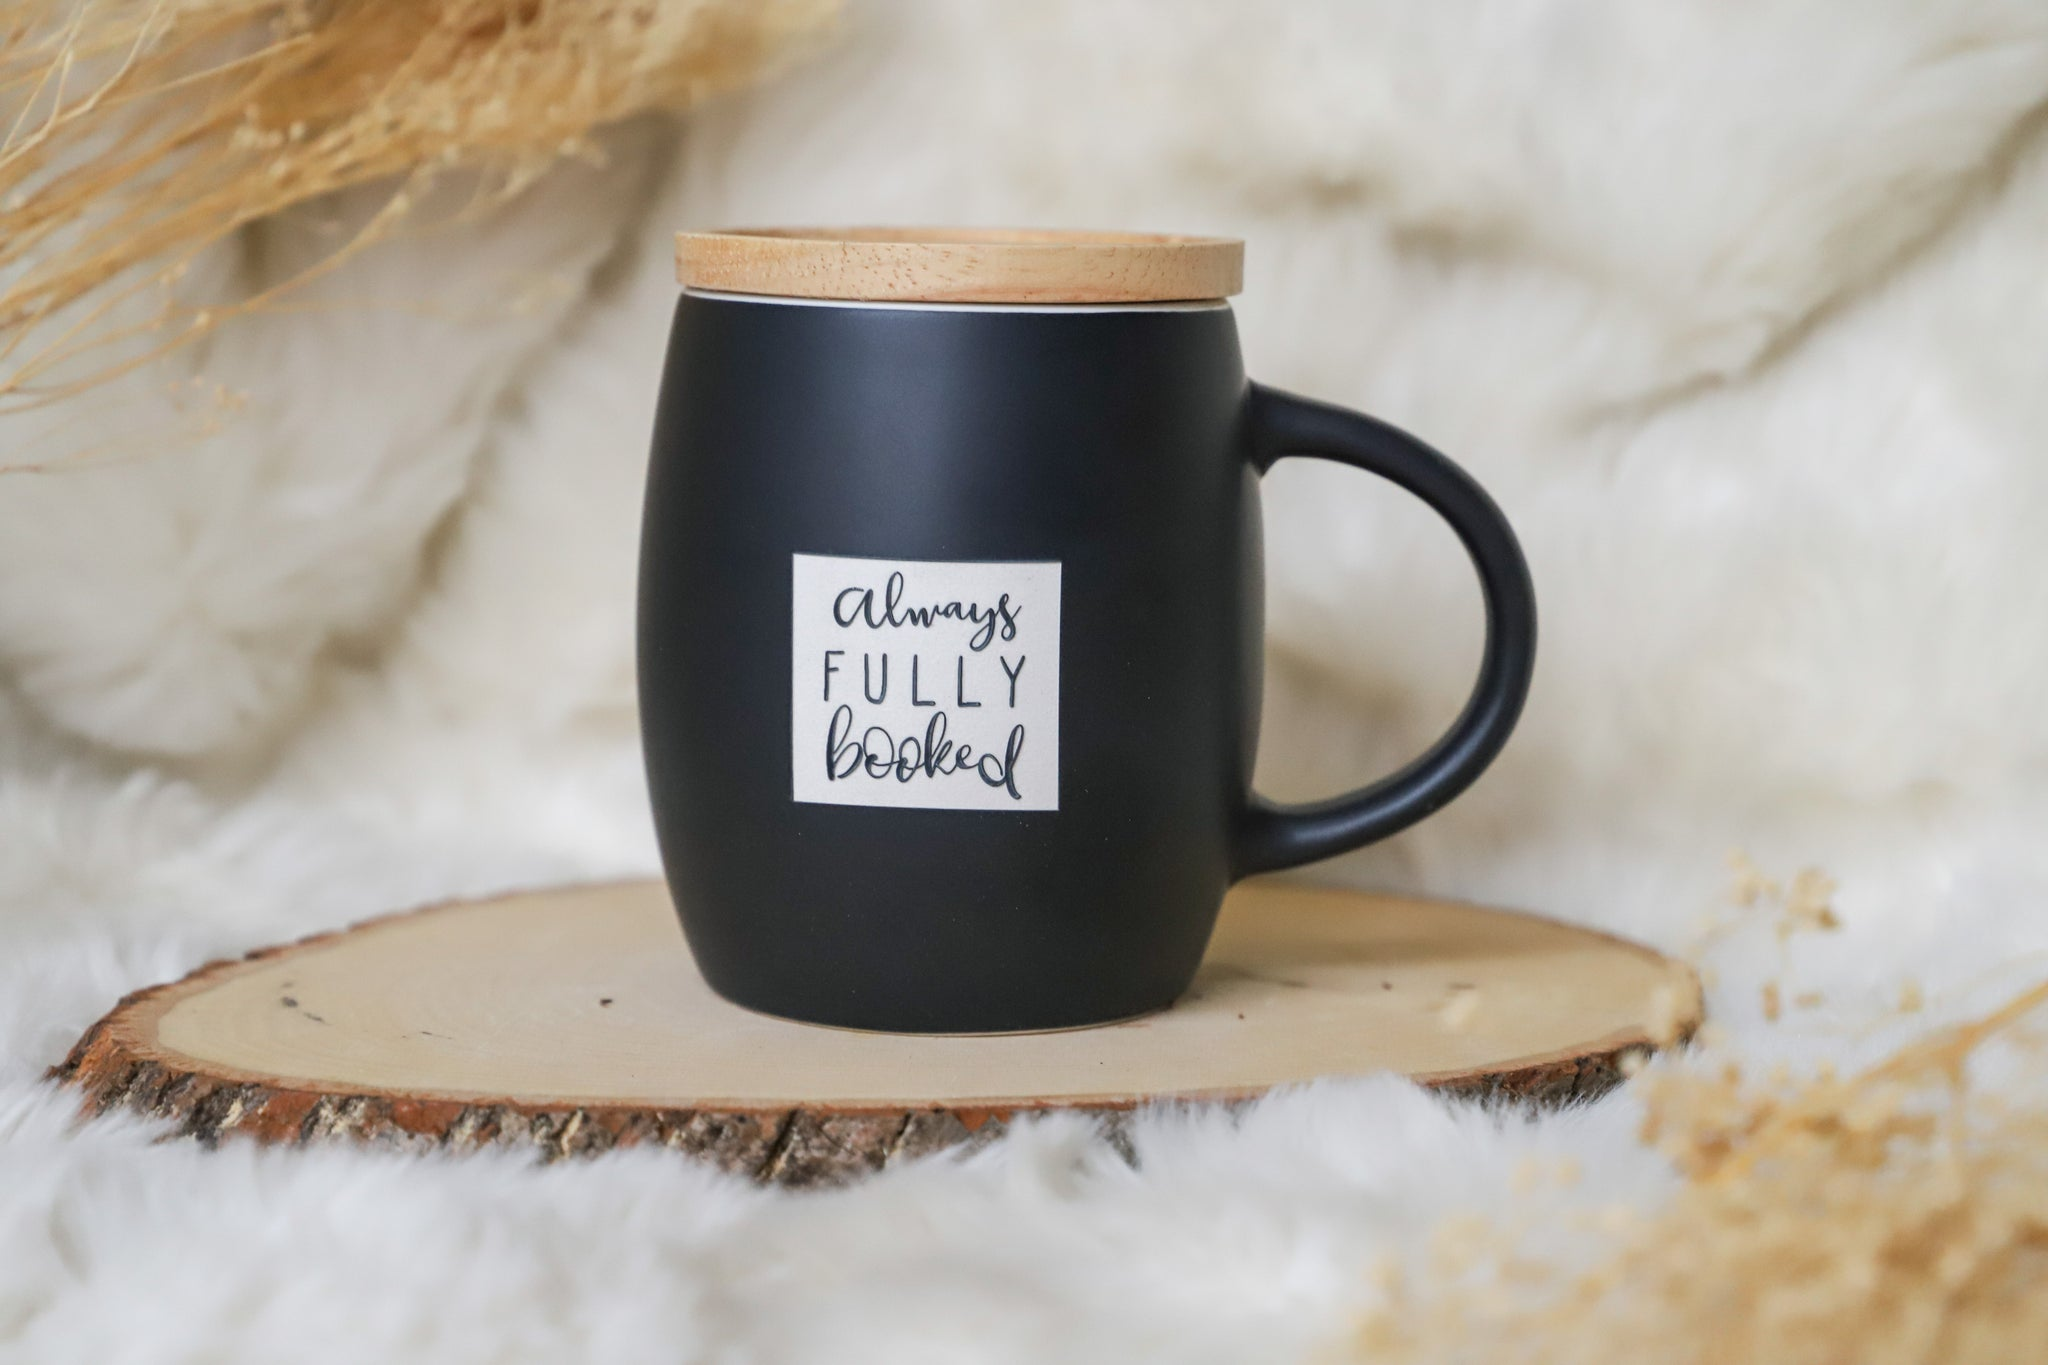 Always Fully Booked -  Bookish Mug